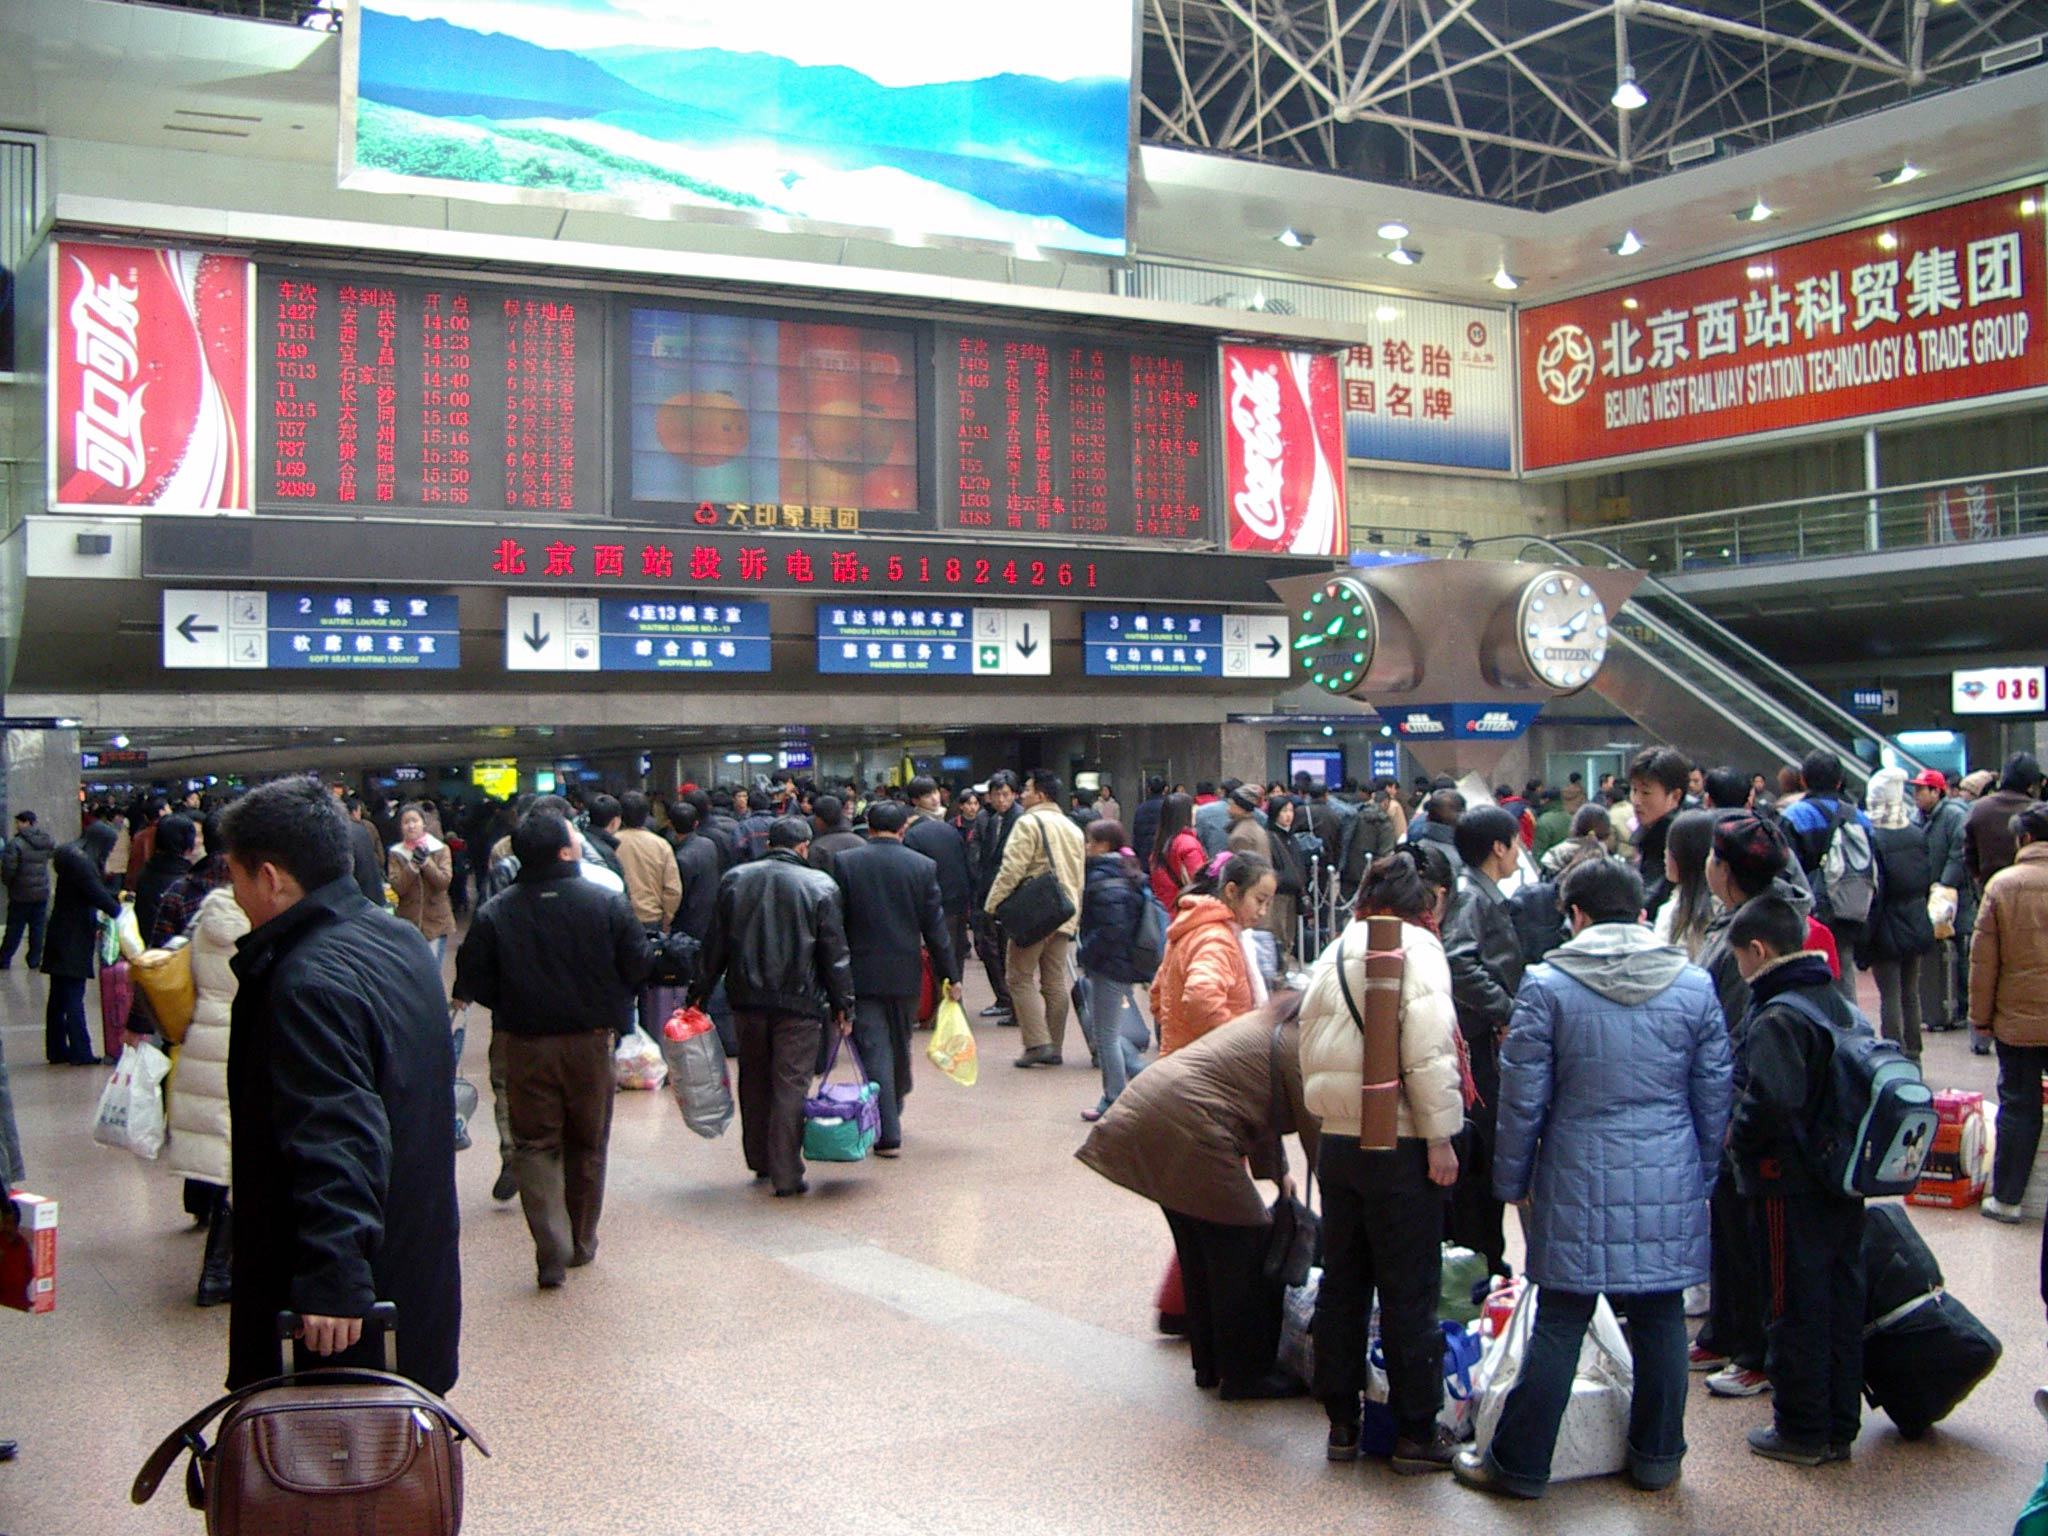 The craziness at Beijing West Rail Station is not quite conveyed in this photo.